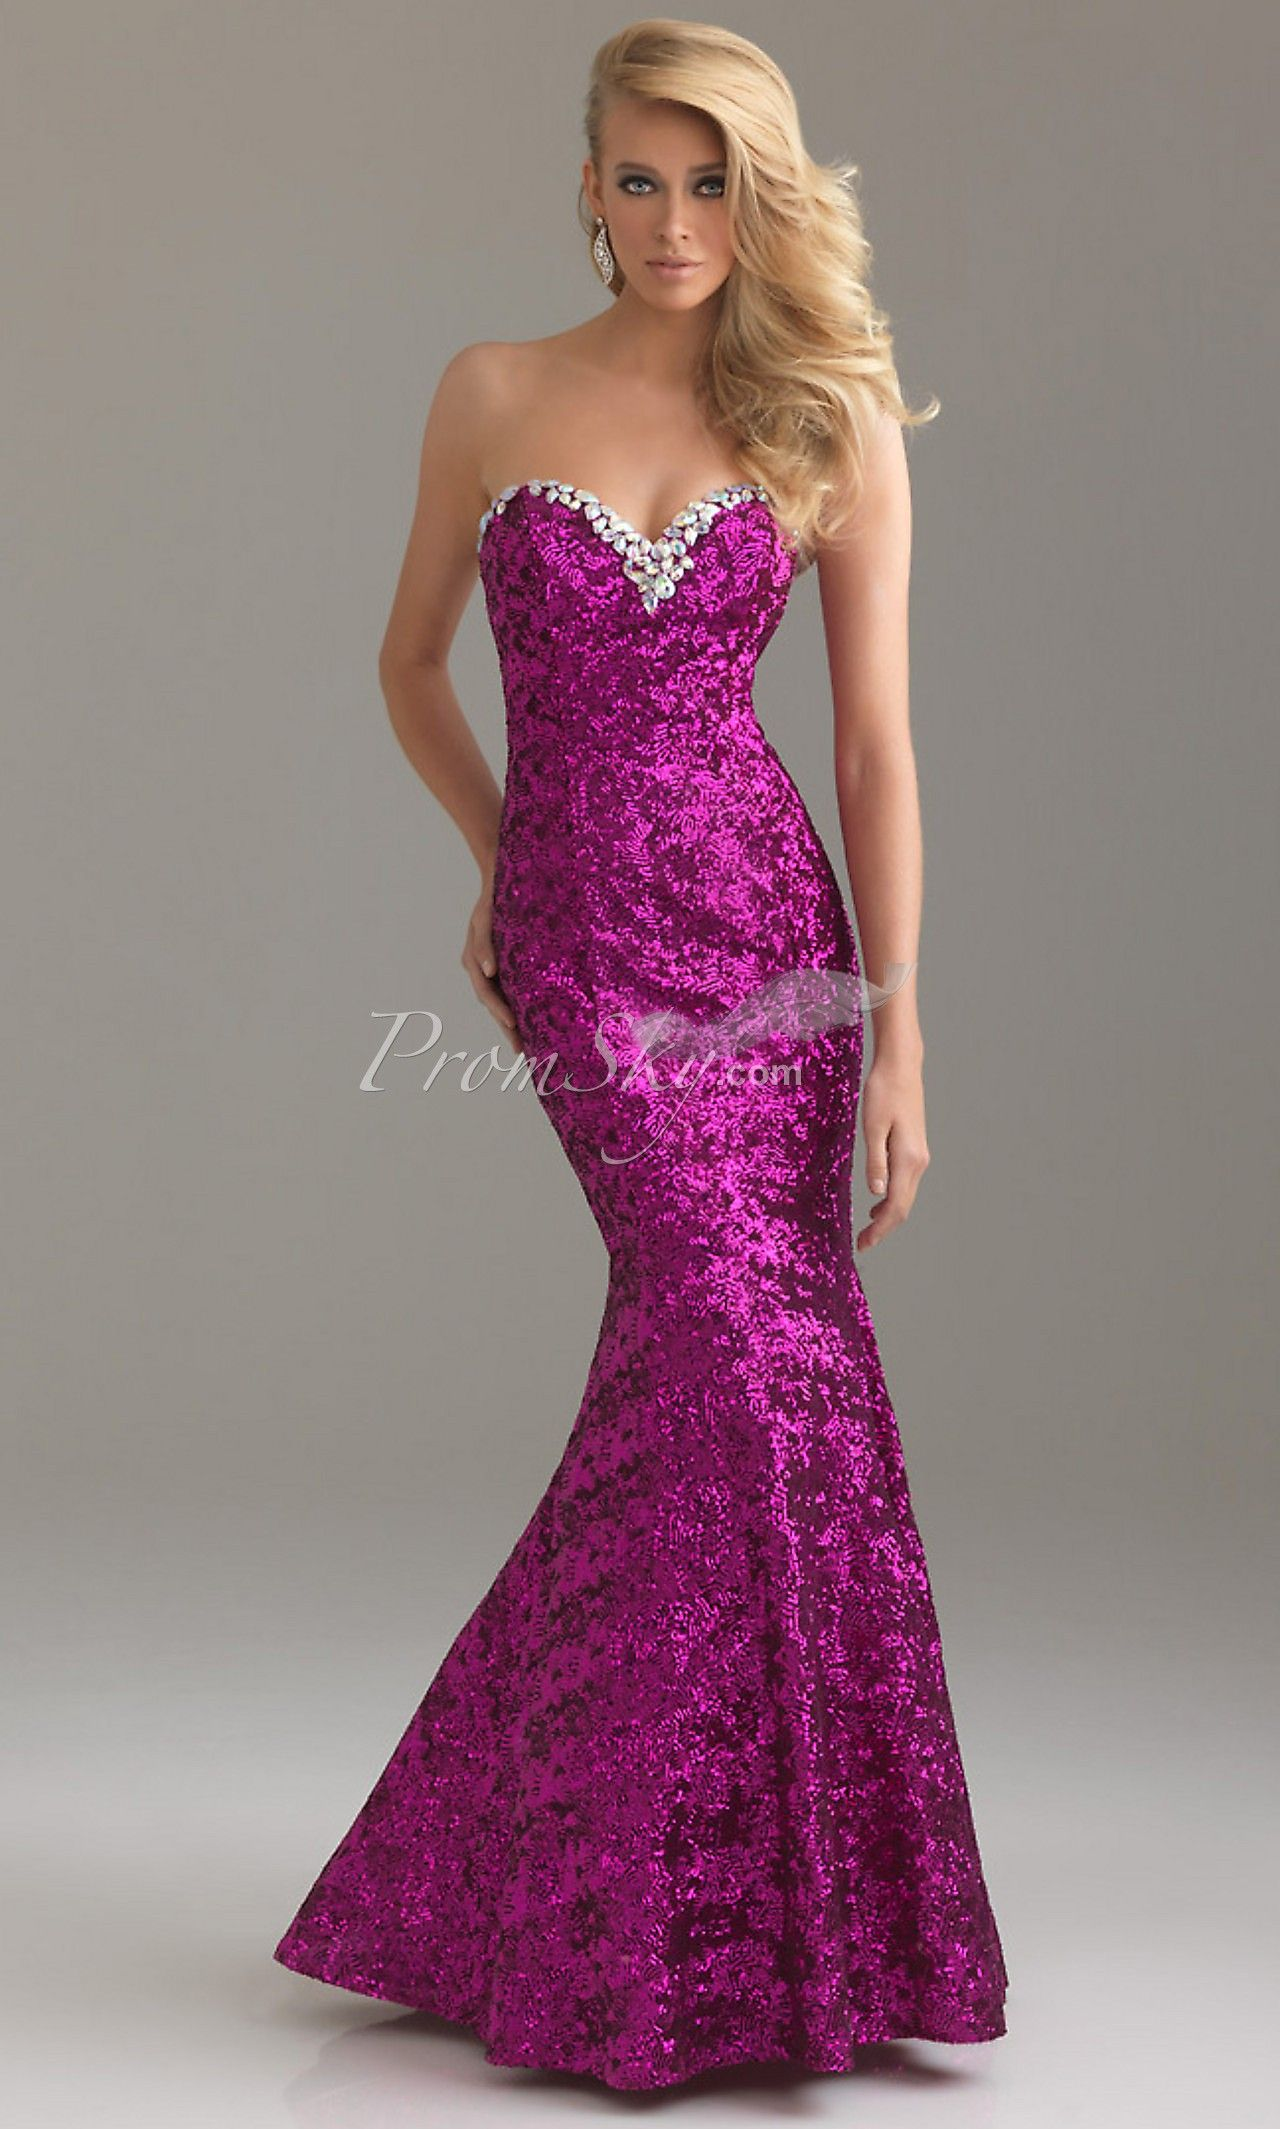 Extravagant Night Moves Evening Gown Fashion Gowns u Dresses